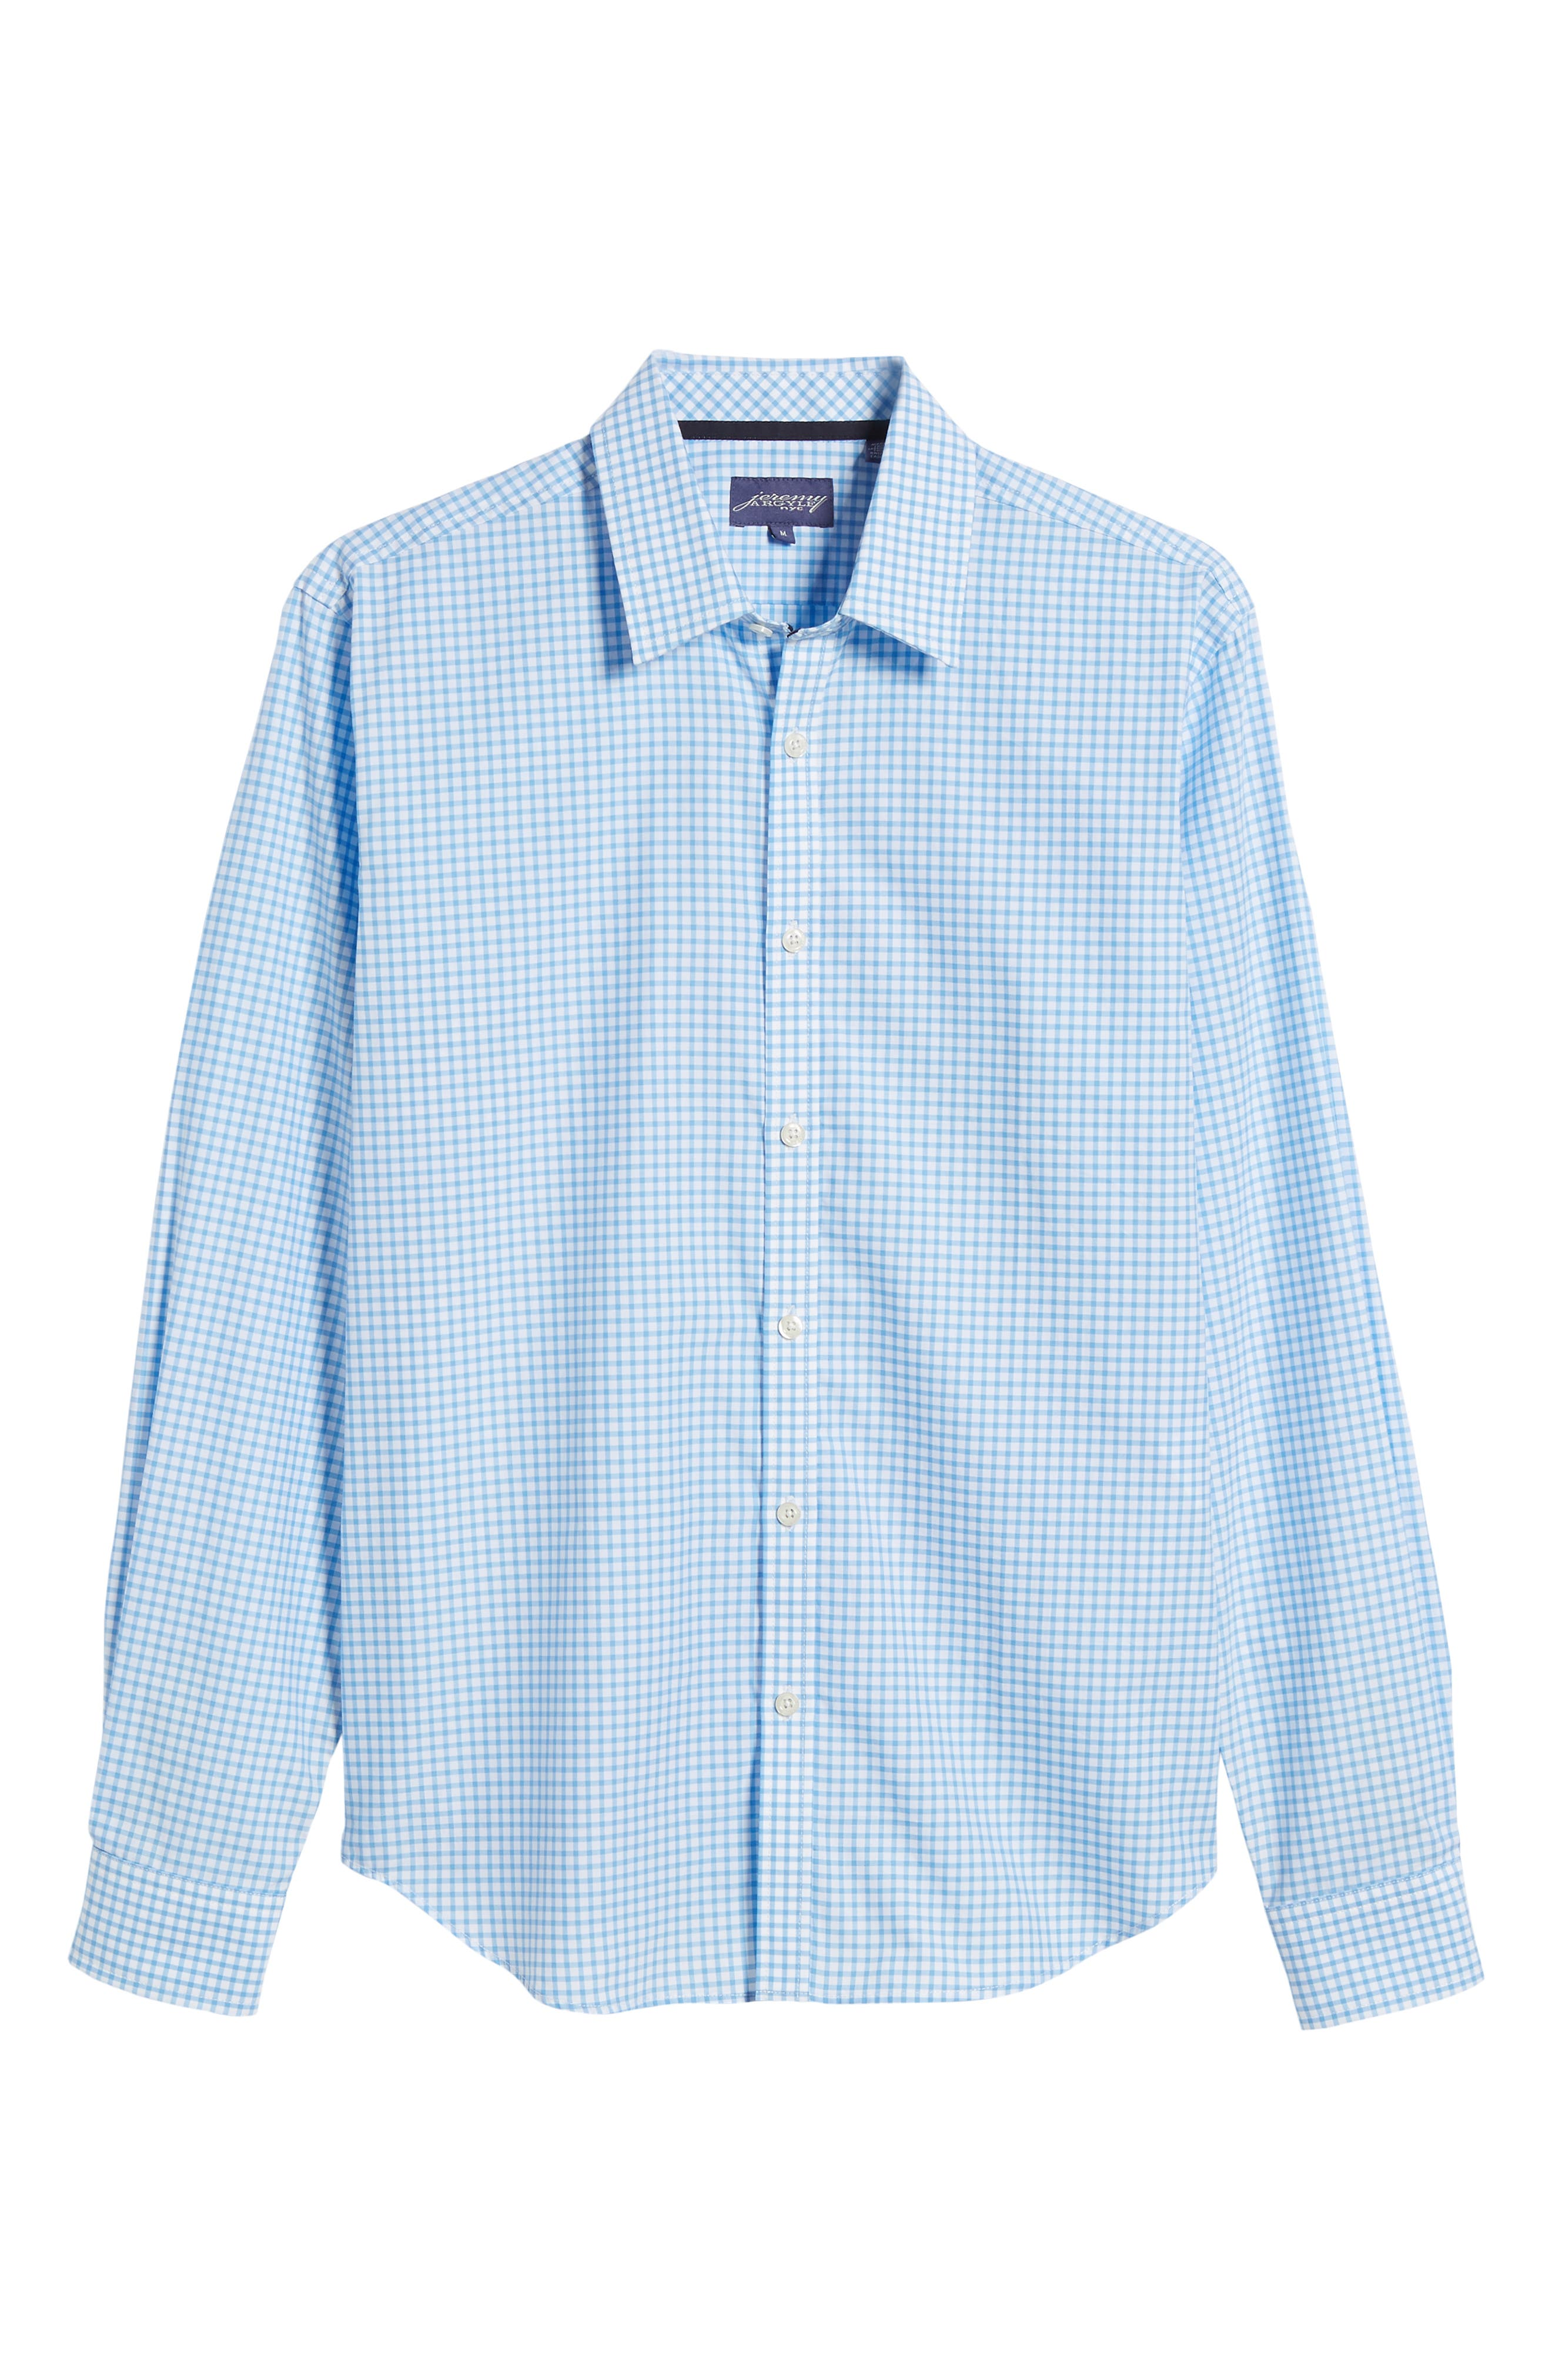 Slim Fit Check Sport Shirt,                             Alternate thumbnail 6, color,                             Light Blue